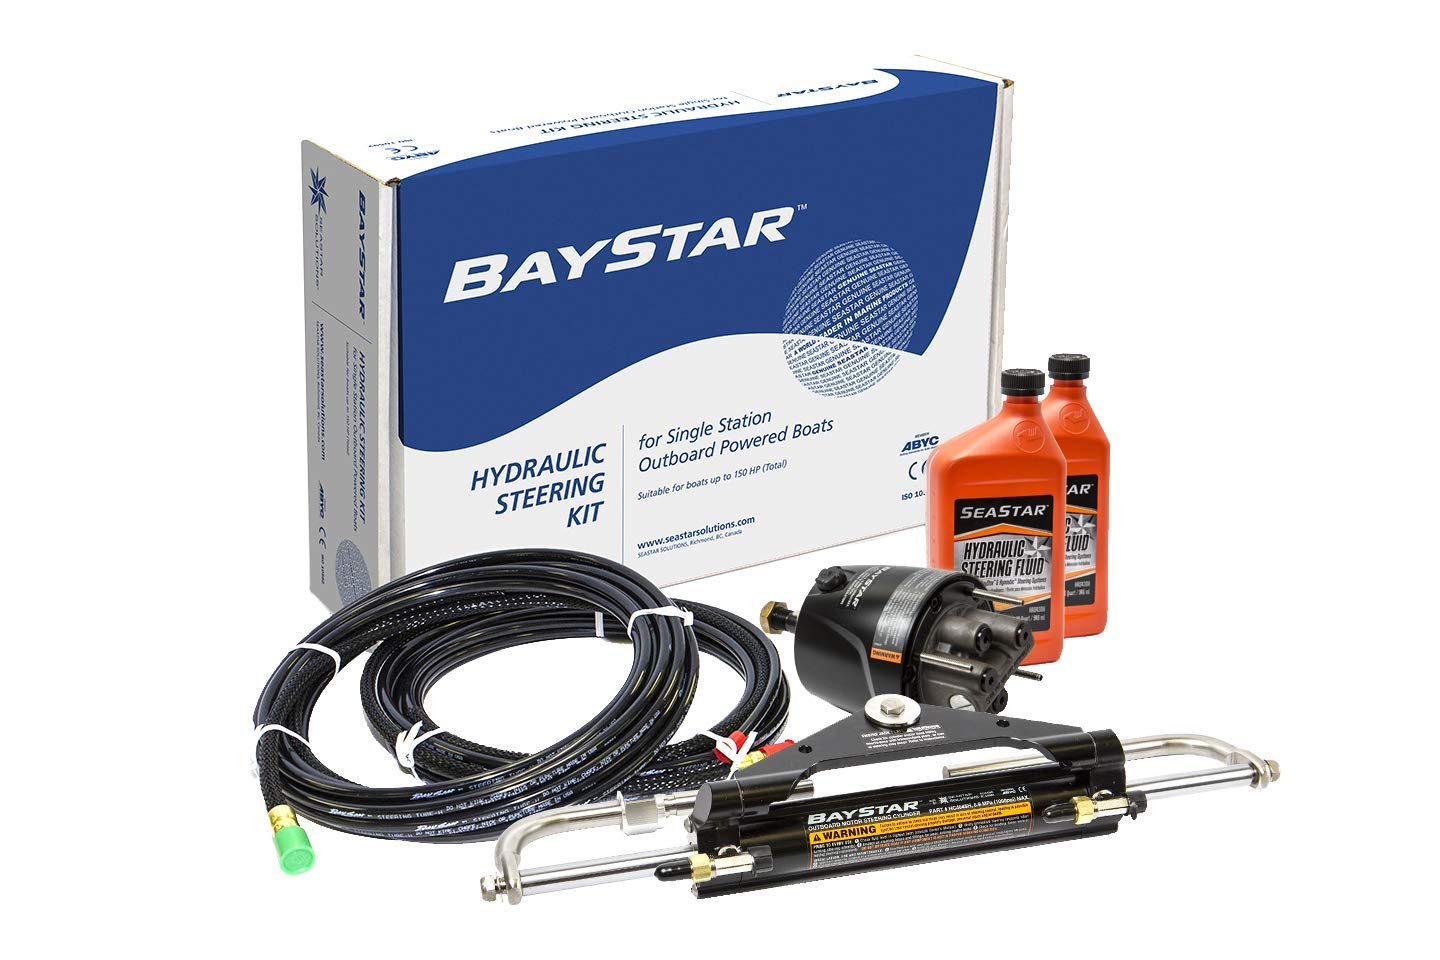 Baystar Kit, HK4200A-3, Hydraulic Steering Kit with Compact Cylinder with 20' Tubing by Sierra International